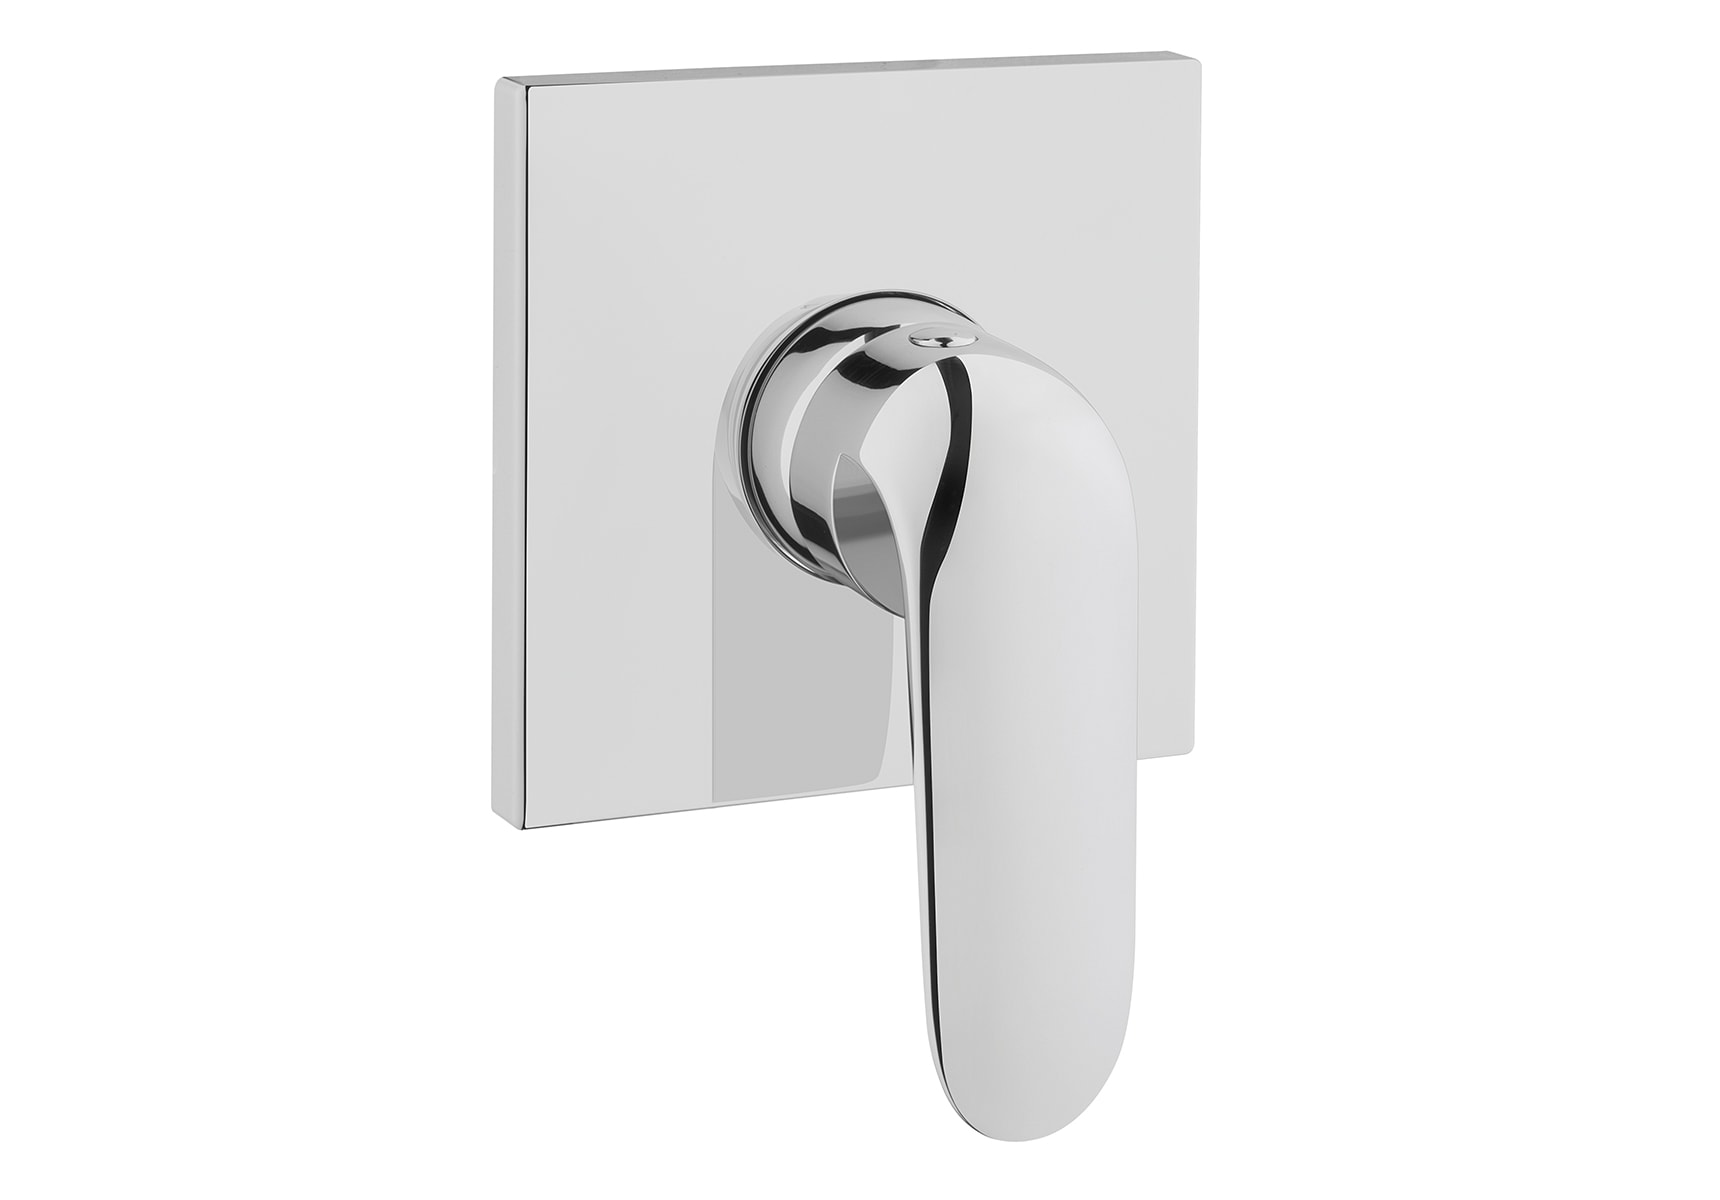 Style X Built-In Shower Mixer (Exposed Part)